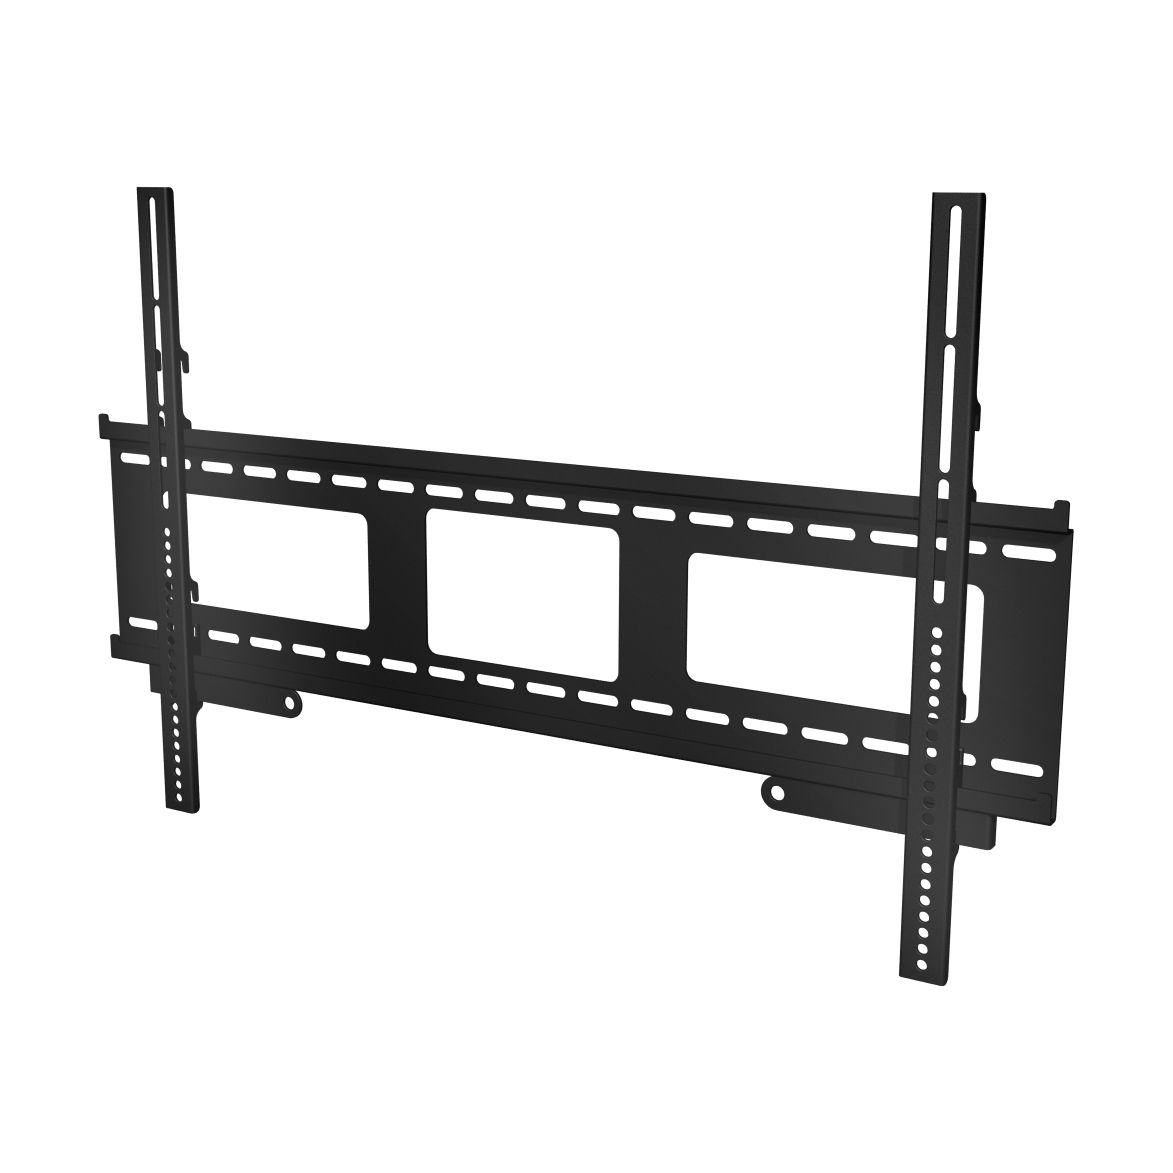 Kmart Tv Mount Promounts Large Flat Universal Wall Mount For 37 Quot 90